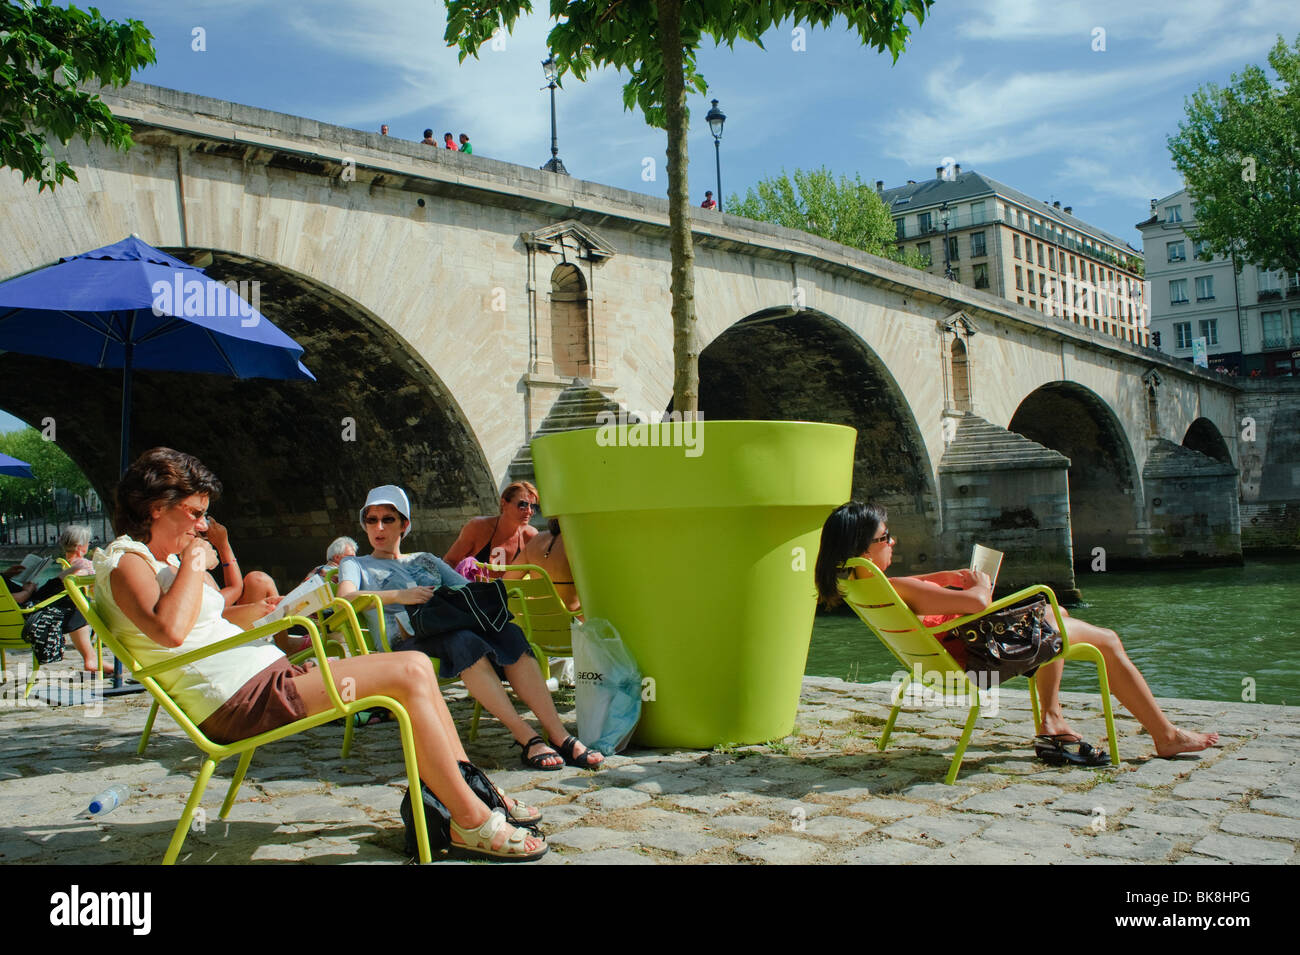 People Enjoying 'Paris Plages' Urban Beach on River Seine plage, Paris France, Summer Festivals, adult extracurricular - Stock Image